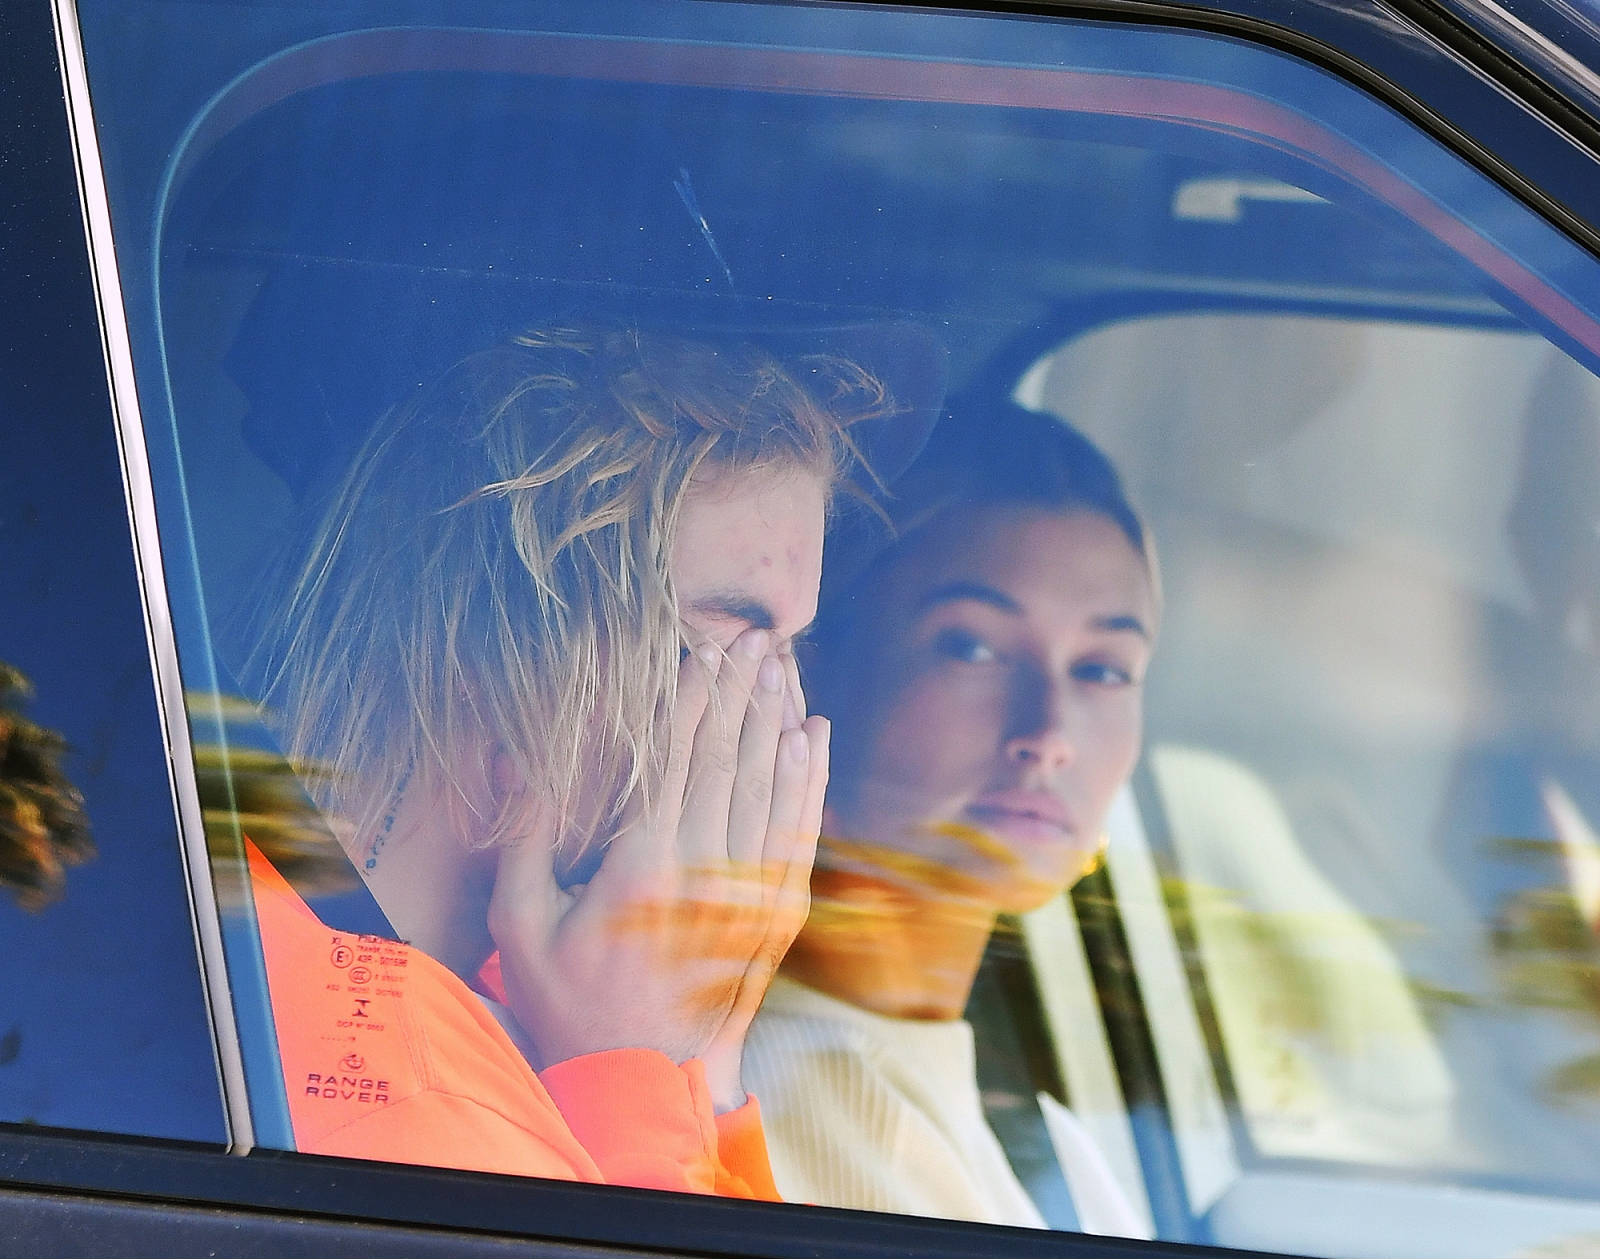 https://www.usmagazine.com/wp-content/uploads/2018/10/justin-bieber-crying-car-hailey-baldwin-landing.jpg?w=1600